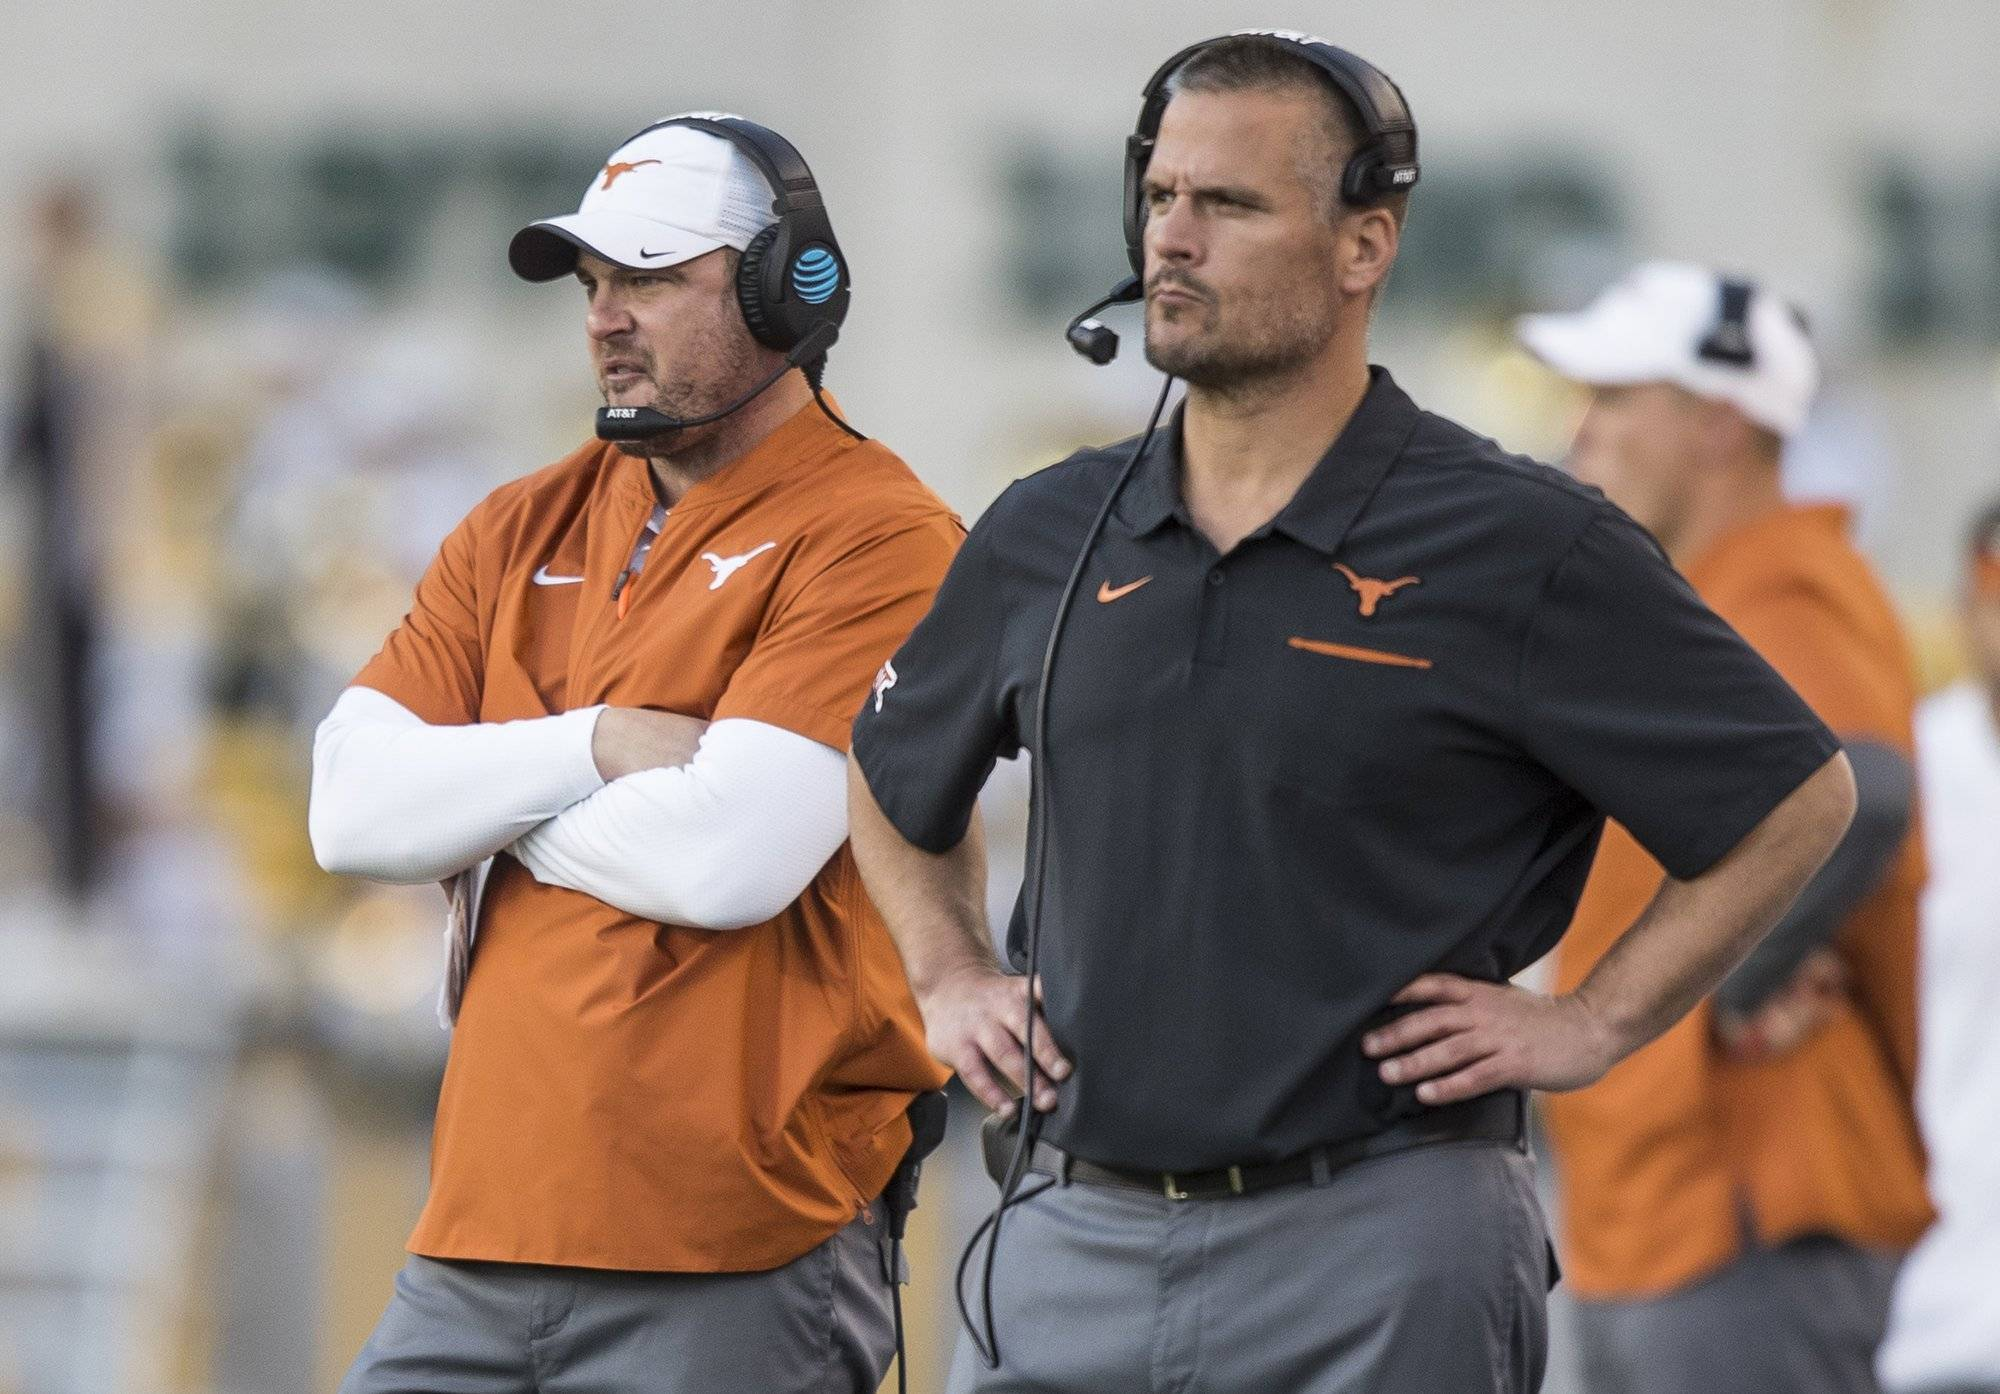 Longhorn Confidential: How do the recent coaching changes at Texas impact recruiting?